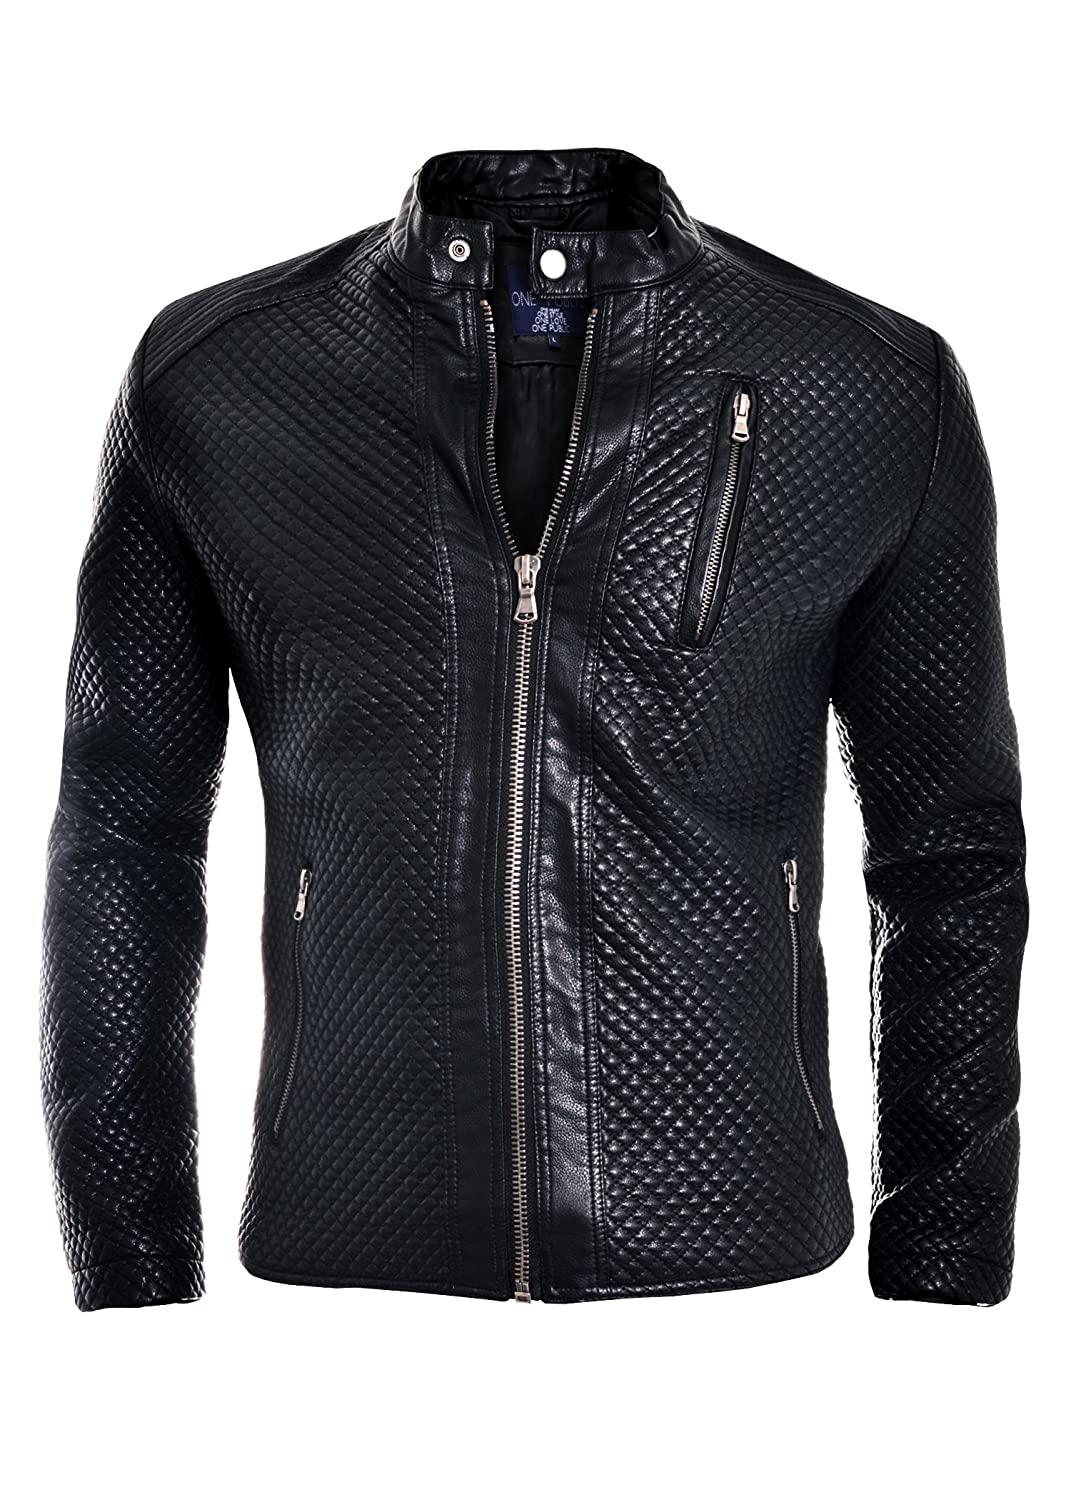 D&R Fashion Men's Black Light Faux Leather Jacket with Quilted Pattern